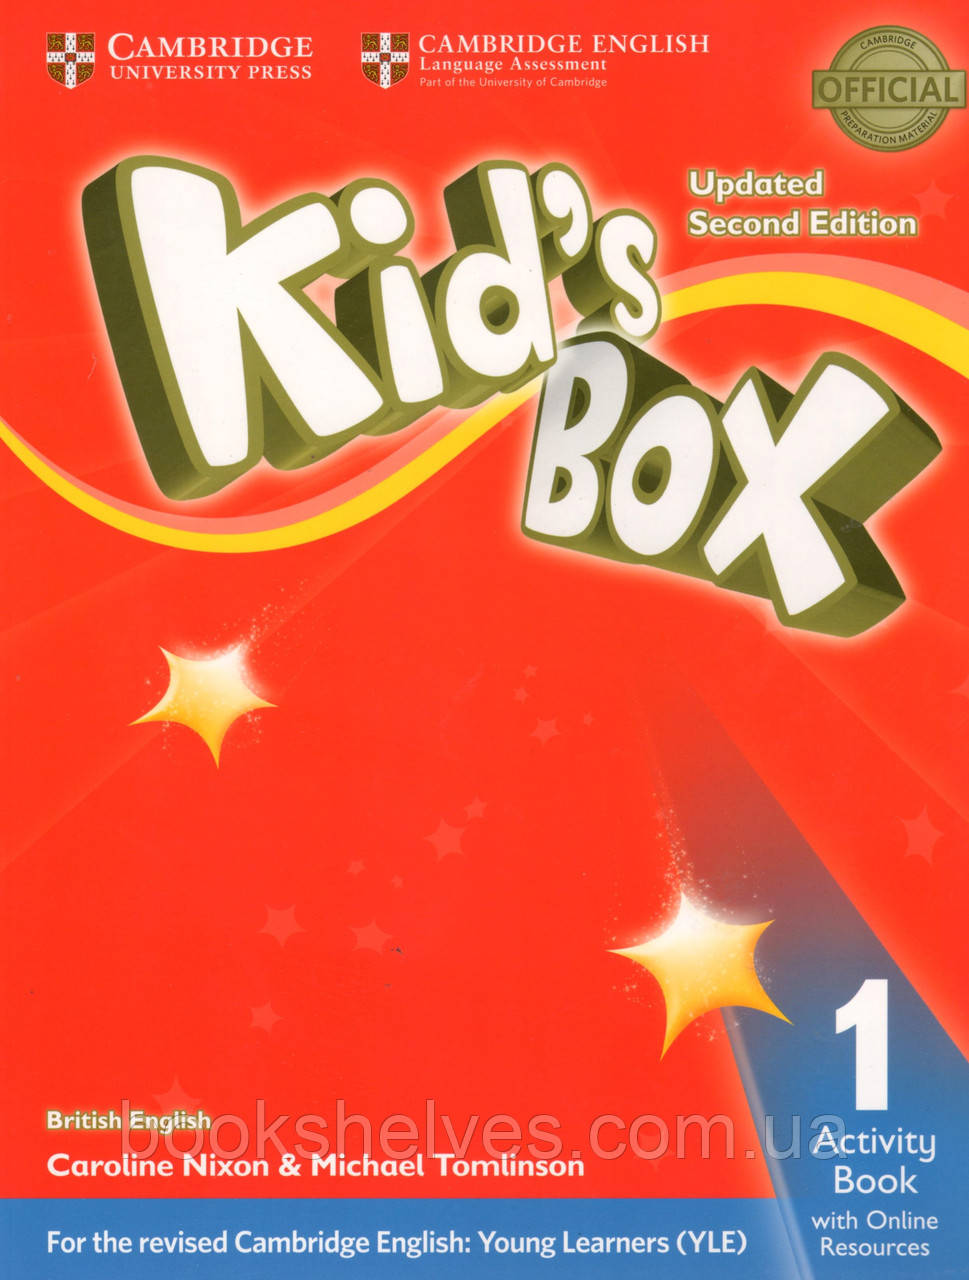 Робочий зошит kid's Box Updated 2nd Edition 1 AB + Online Resources